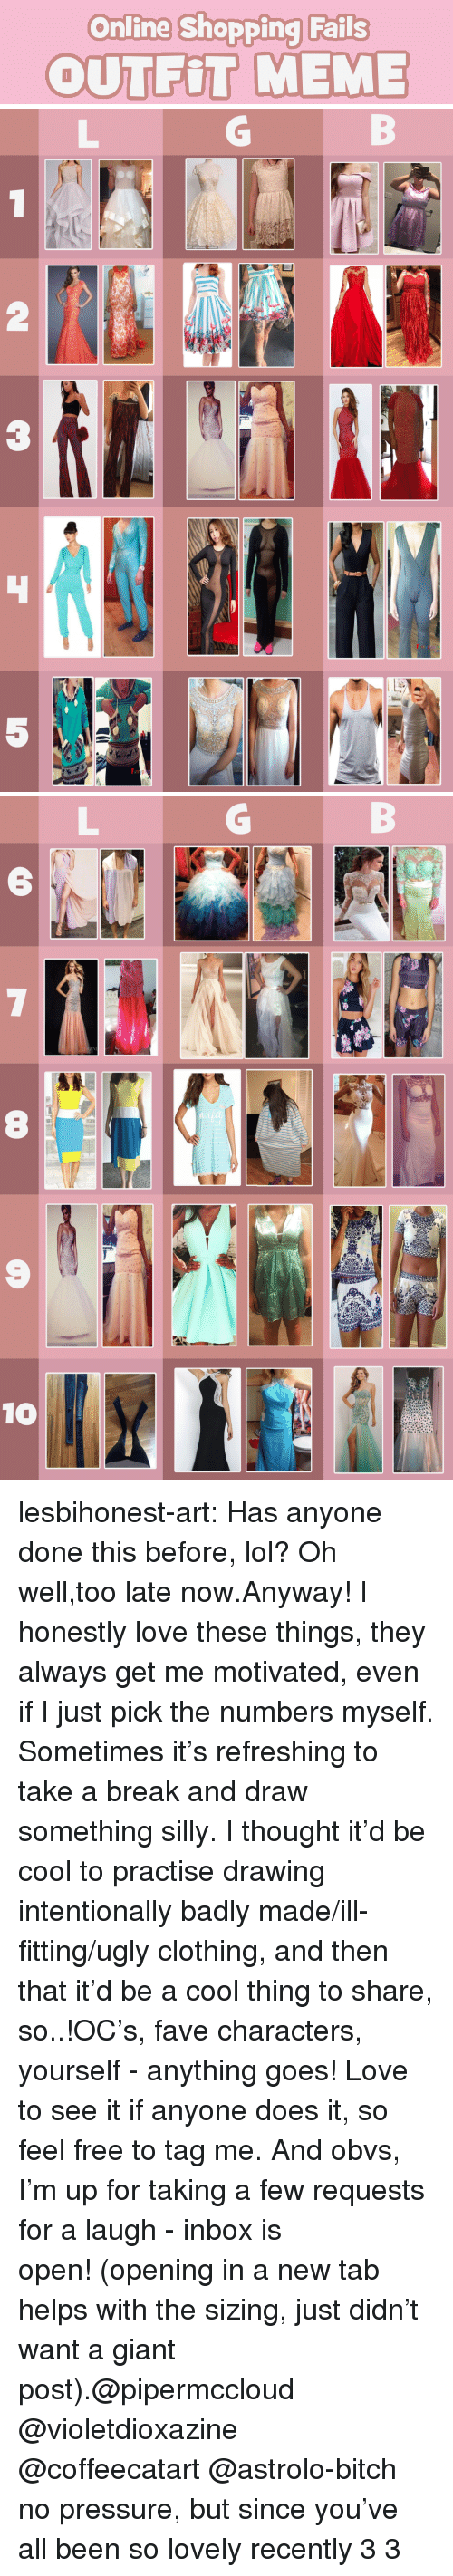 Bitch, Lol, and Love: Onfling Shopping Fails  OUTFIT MEME   2  3  5   6  NI  8  9  10 lesbihonest-art:  Has anyone done this before, lol? Oh well,too late now.Anyway! I honestly love these things, they always get me motivated, even if I just pick the numbers myself. Sometimes it's refreshing to take a break and draw something silly.I thought it'd be cool to practise drawing intentionally badly made/ill-fitting/ugly clothing, and then that it'd be a cool thing to share, so..!OC's, fave characters, yourself - anything goes! Love to see it if anyone does it, so feel free to tag me. And obvs, I'm up for taking a few requests for a laugh - inbox is open!(opening in a new tab helps with the sizing, just didn't want a giant post).@pipermccloud @violetdioxazine @coffeecatart@astrolo-bitch no pressure, but since you've all been so lovely recently 3 3